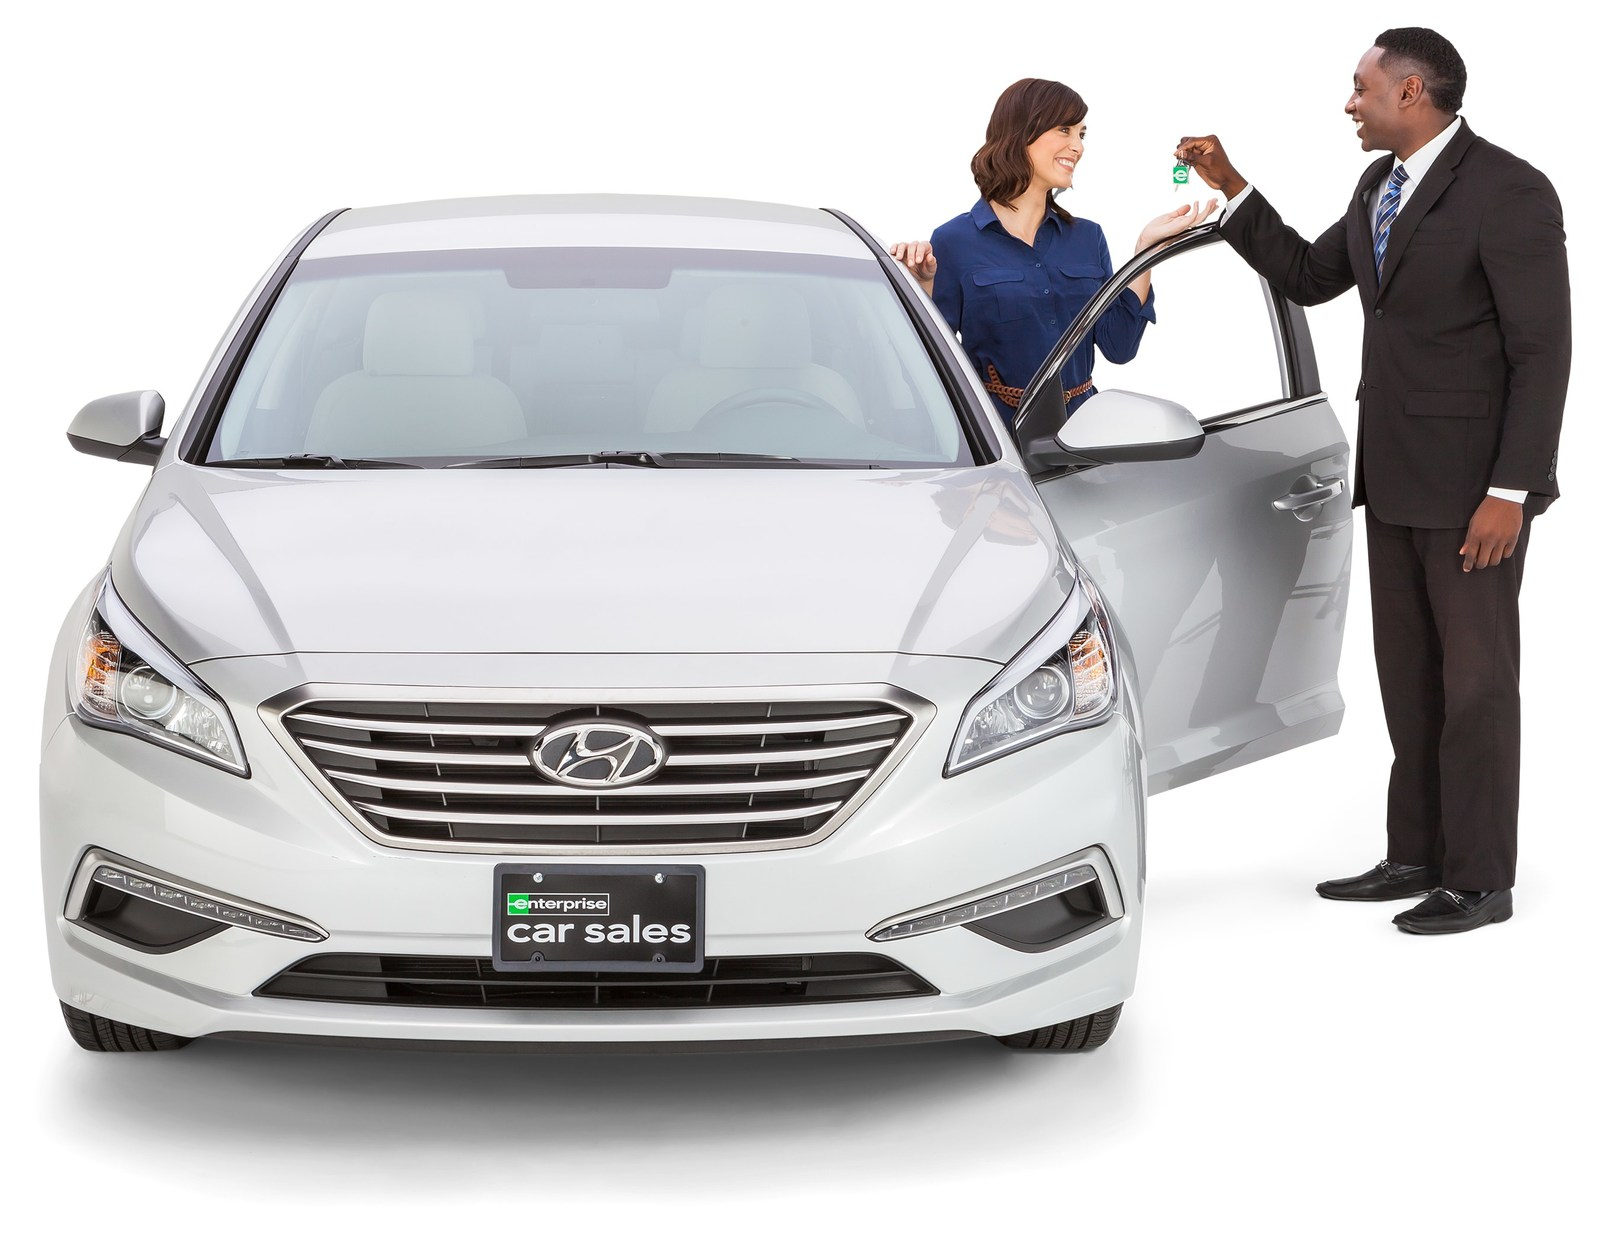 Enterprise Car Sales Drives Record 575 Million In Credit Union Auto Loans